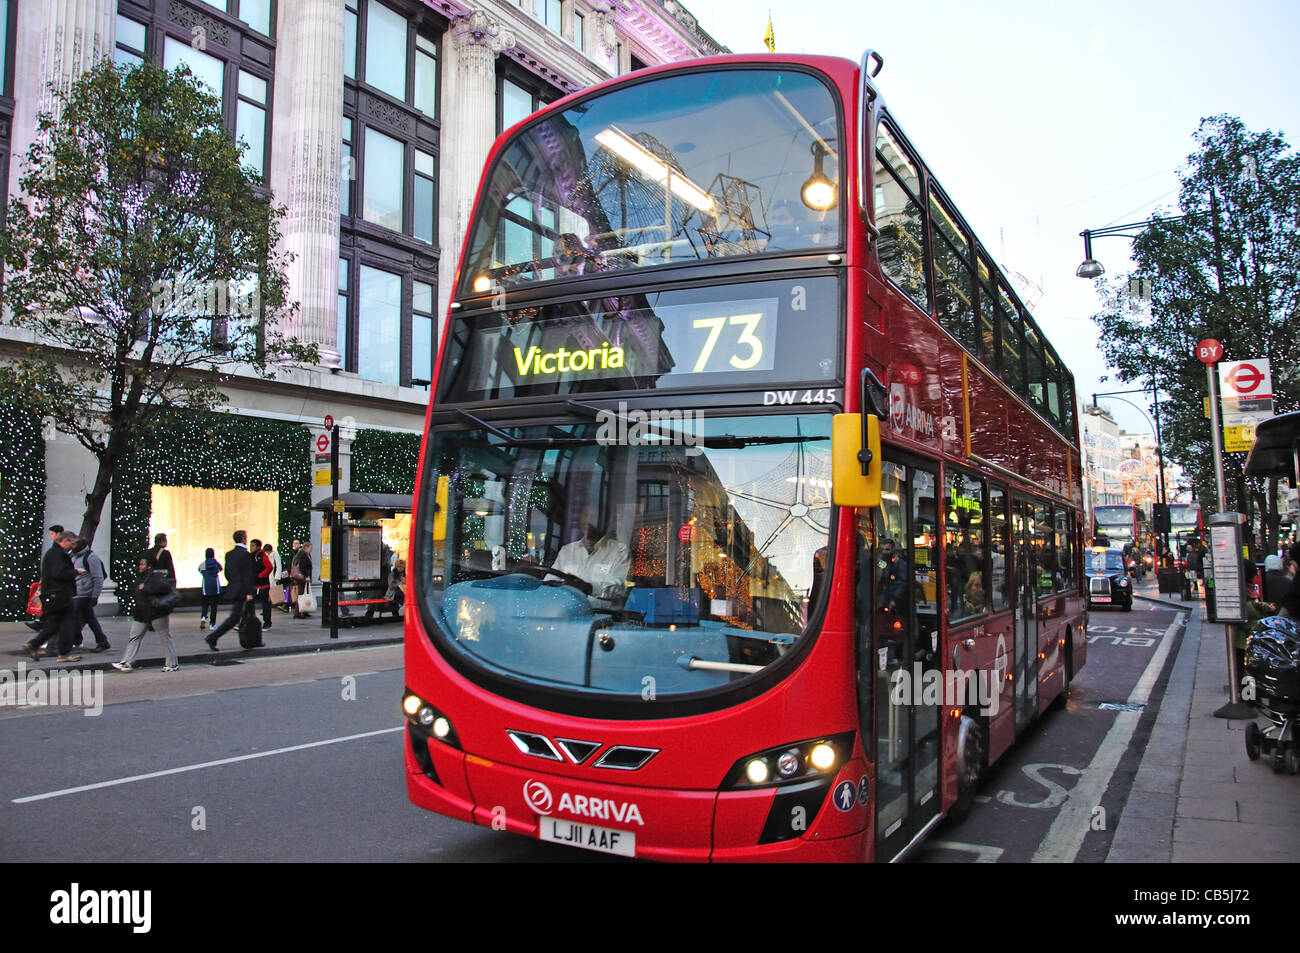 Double decker bus in Oxford Street, City of Westminster, London, Greater London, England, United Kingdo - Stock Image